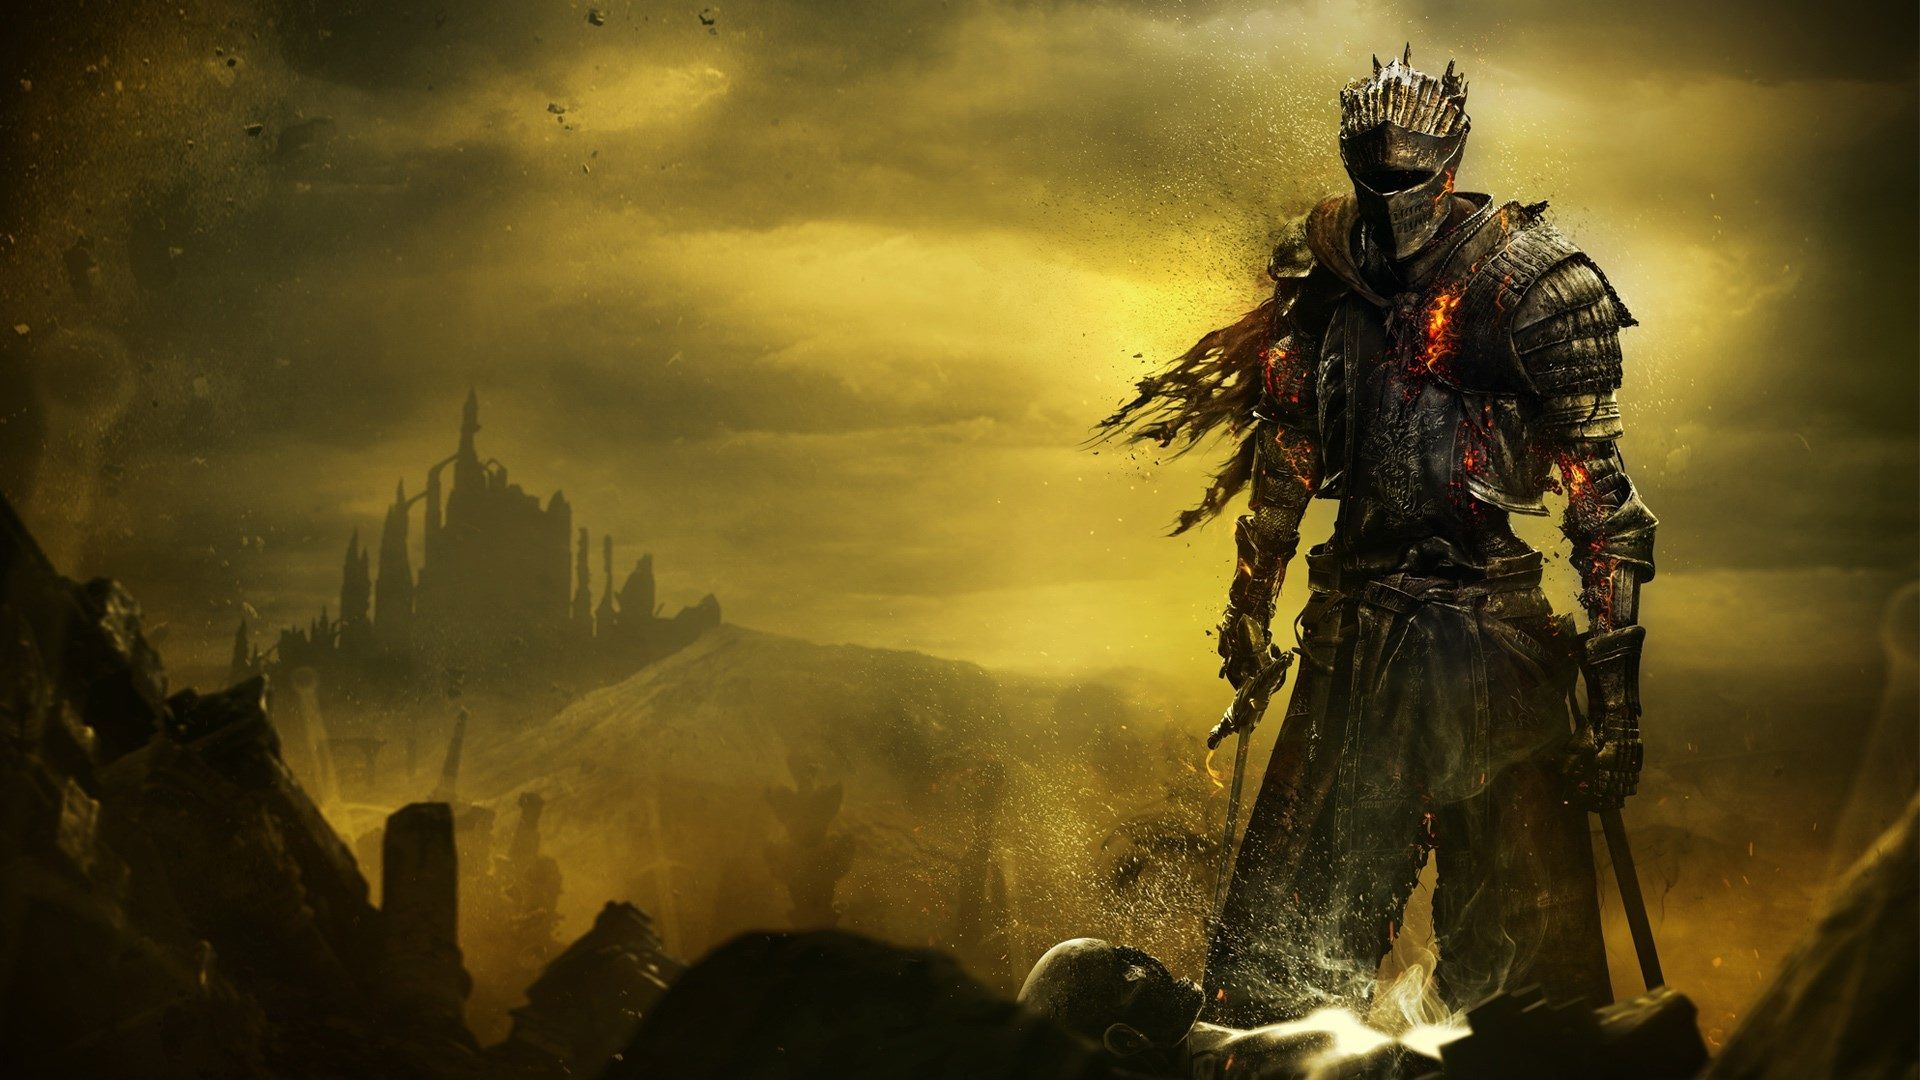 1920x1080 Dark Souls 3 Hd Screen Wallpaper Sobaki Raznoe Kot